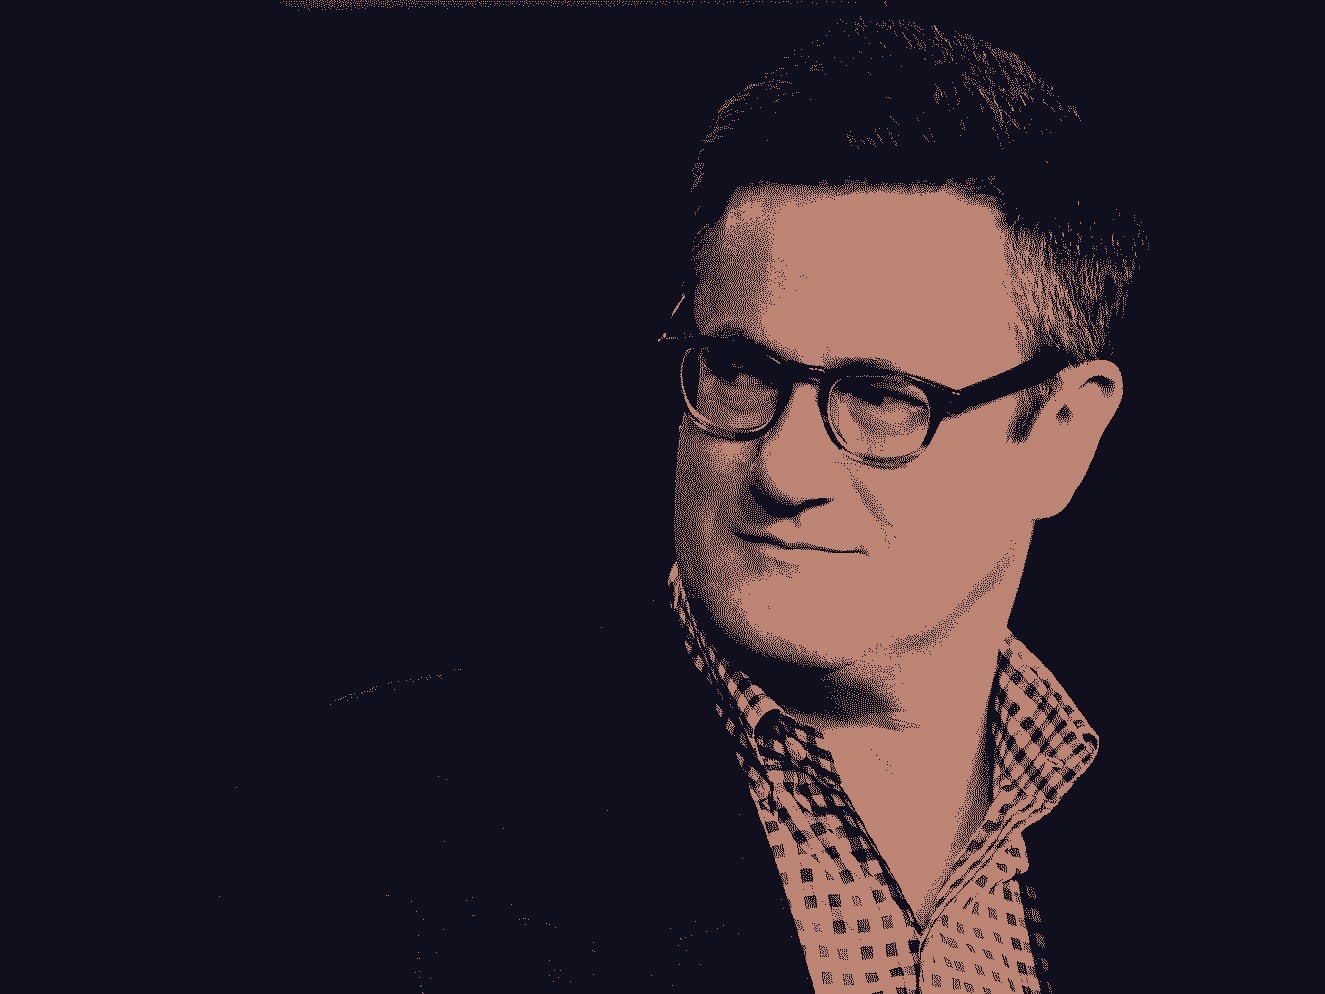 """MSNBC host Joe Scarborough has changed his views on gun control over the years. Following the school shooting in Florida on Wednesday, Scarborough has advocated for new gun control laws,Grabien Newsreported. However, in 1994 when he was a congressional candidate, he sang a different tune. """"The NRA must elect & support candidates who will view …"""